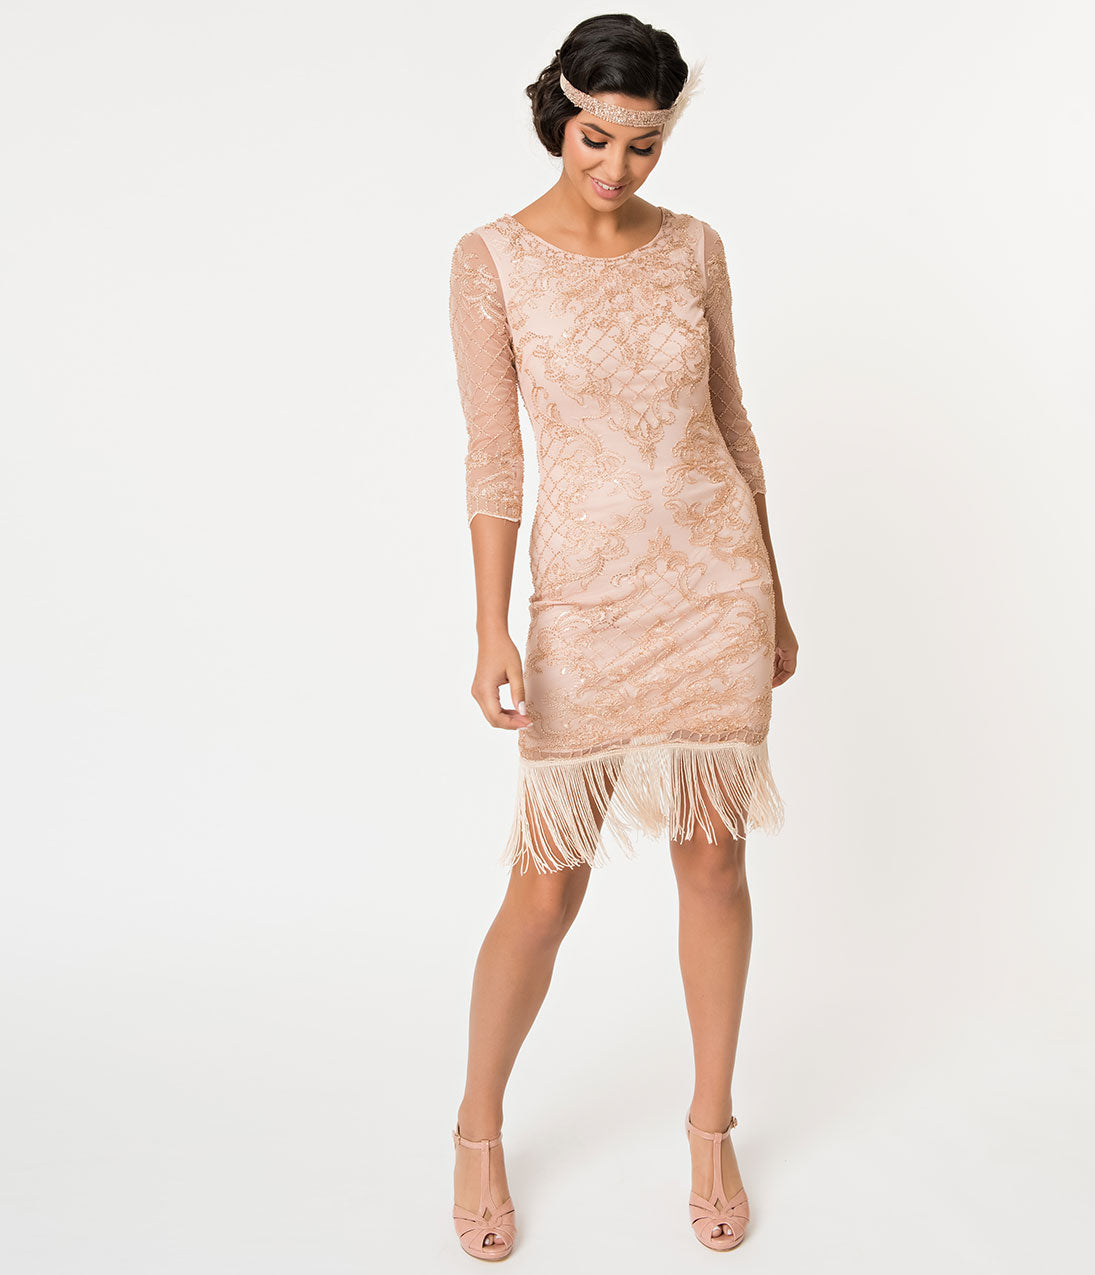 1920s Evening Dresses & Formal Gowns 1920S Style Rose Pink  Gold Beaded Sleeved Fringe Flapper Dress $110.00 AT vintagedancer.com